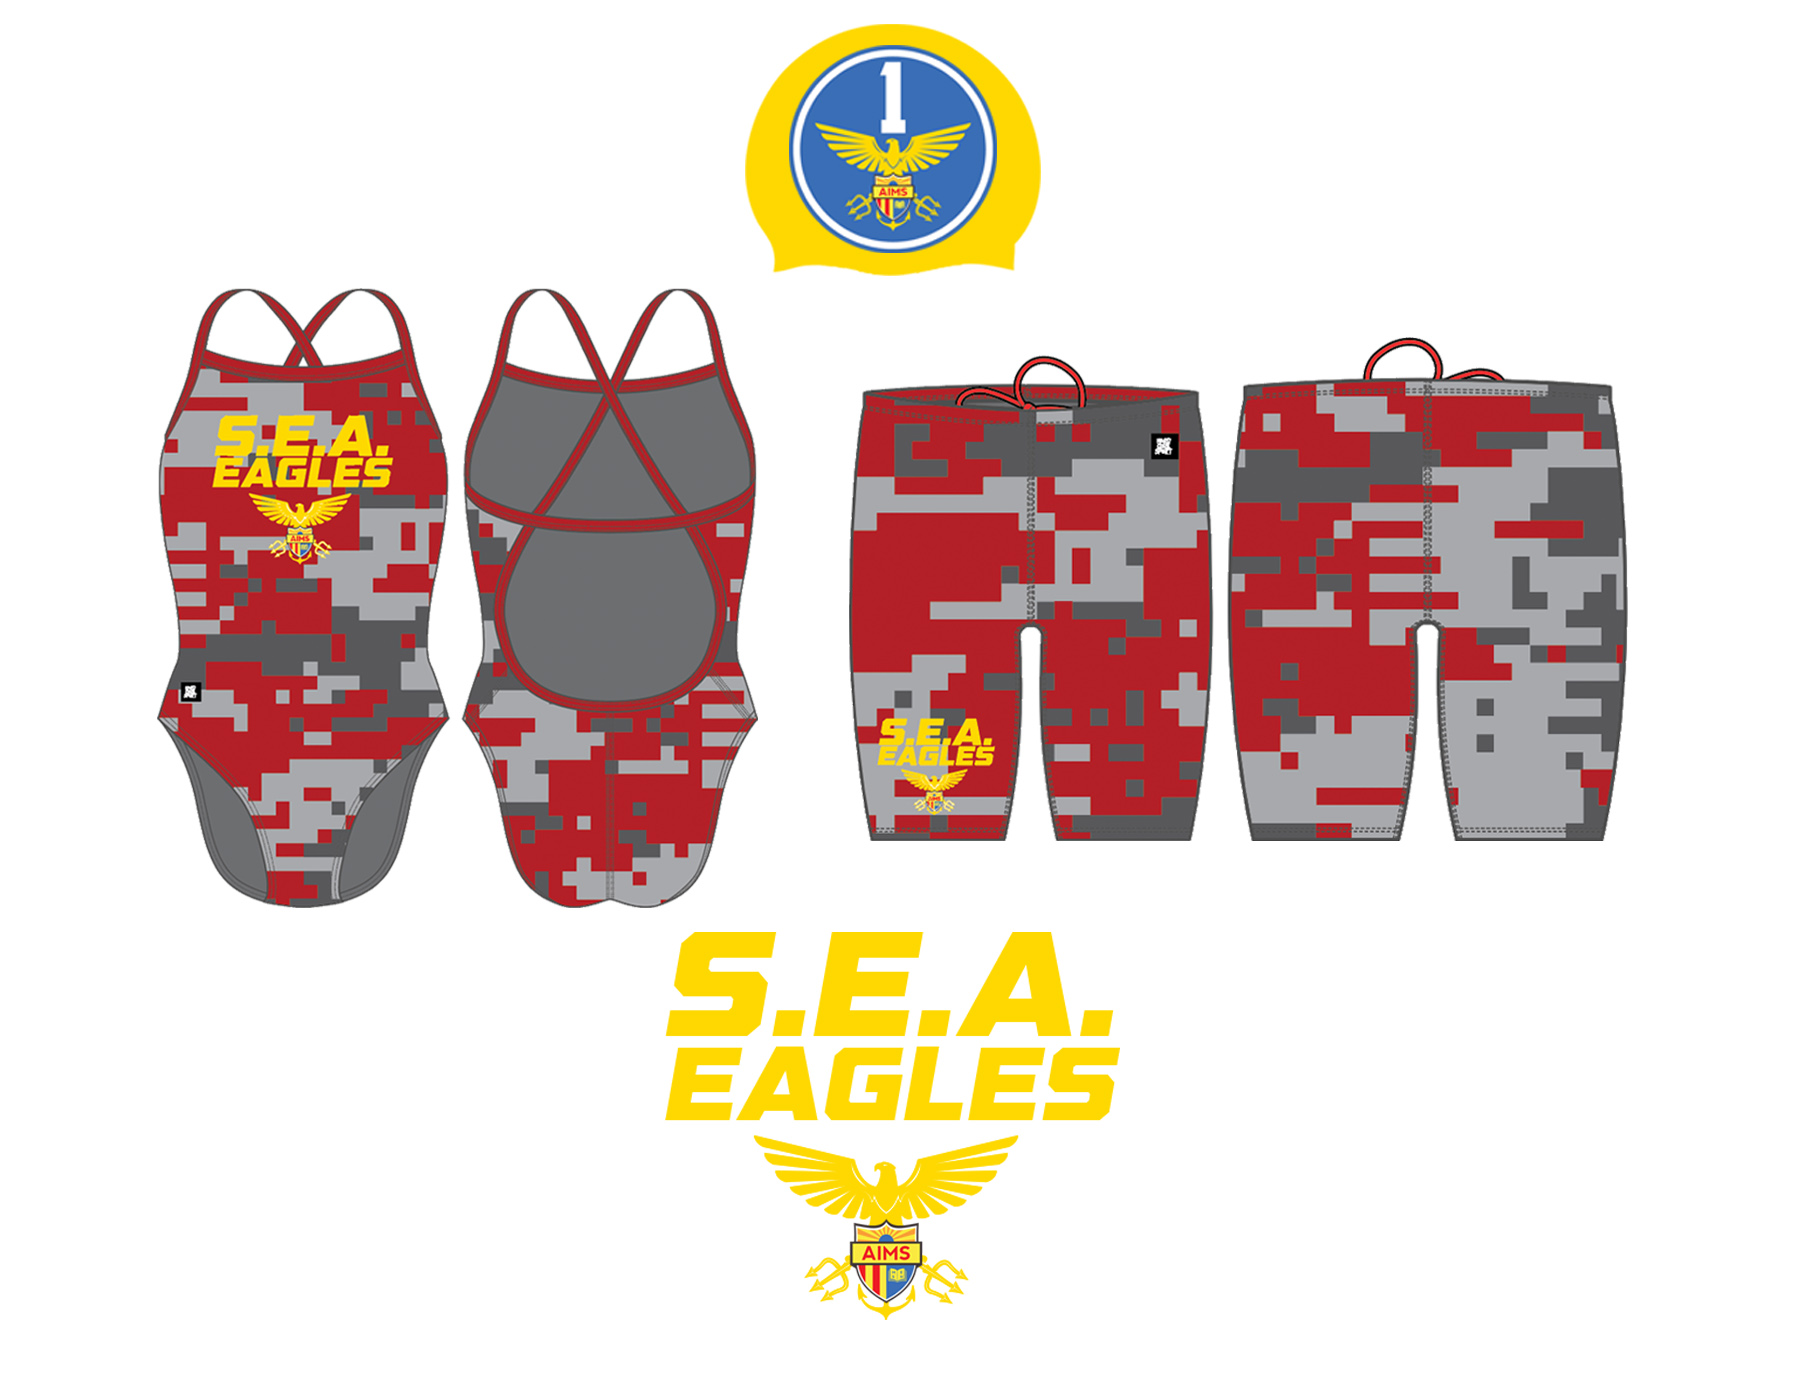 """S.E.A. Eagles """"Sea Combat"""" Uniforms    In honor of its inaugural season, the Swimming Elite of American Indian Public High School (S.E.A. Eagles) will be donning their """"Sea Combat"""" uniforms: a red and grey camouflage-patterned uniform and custom sea-themed Golden Eagles logo that's affixed with two tridents and a sea anchor. Additionally, the S.E.A. Eagles will wear  WWII Army Air Corp-themed  gold swim caps with the #1 on them - signifying the school's first ever swim team (S.E.A. Team One). Together, the inaugural 40 member S.E.A. Team will look to assert its dominance within the water."""